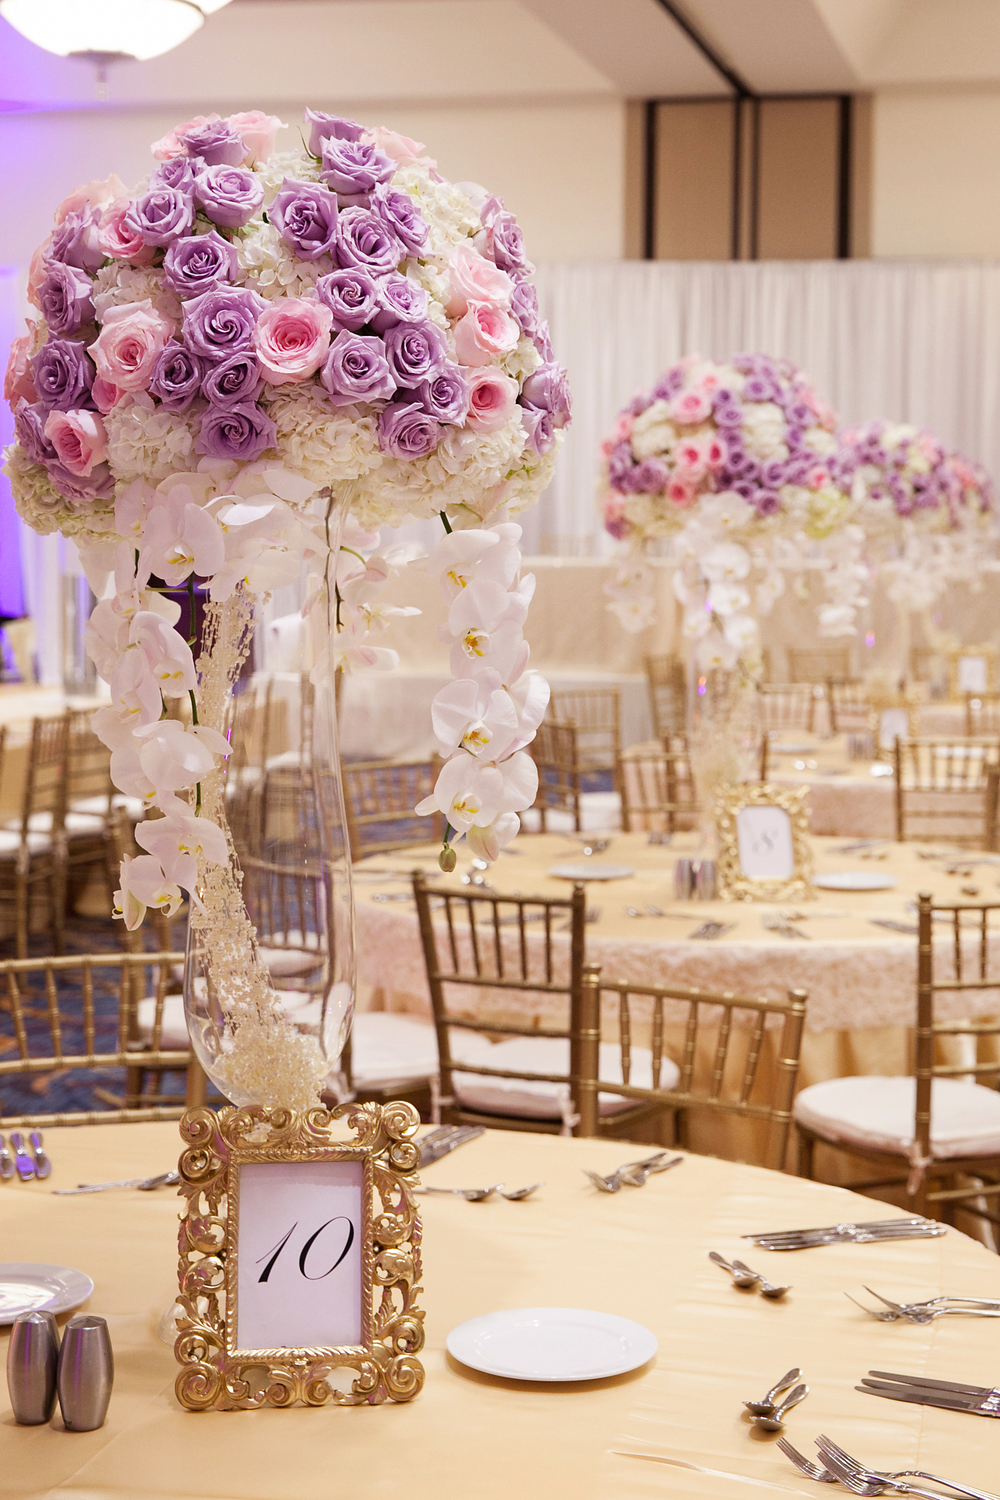 2_Lavender and pink centerpiece.jpg